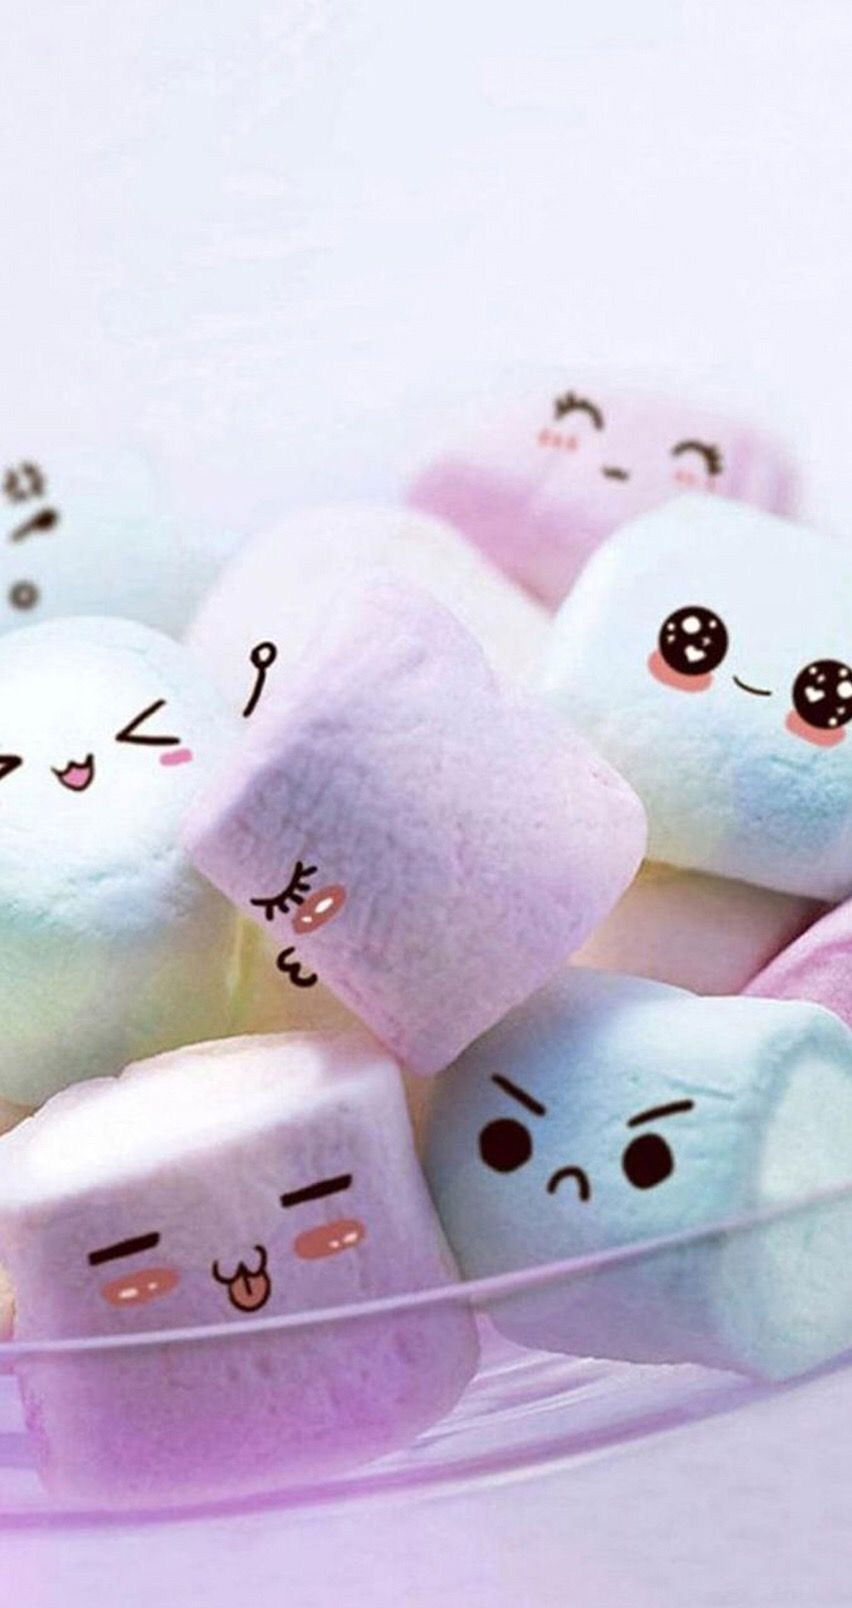 Pin By Honeybeexoxo On Cake Dessert Pretty Wallpaper Iphone Wallpaper Iphone Cute Cute Marshmallows